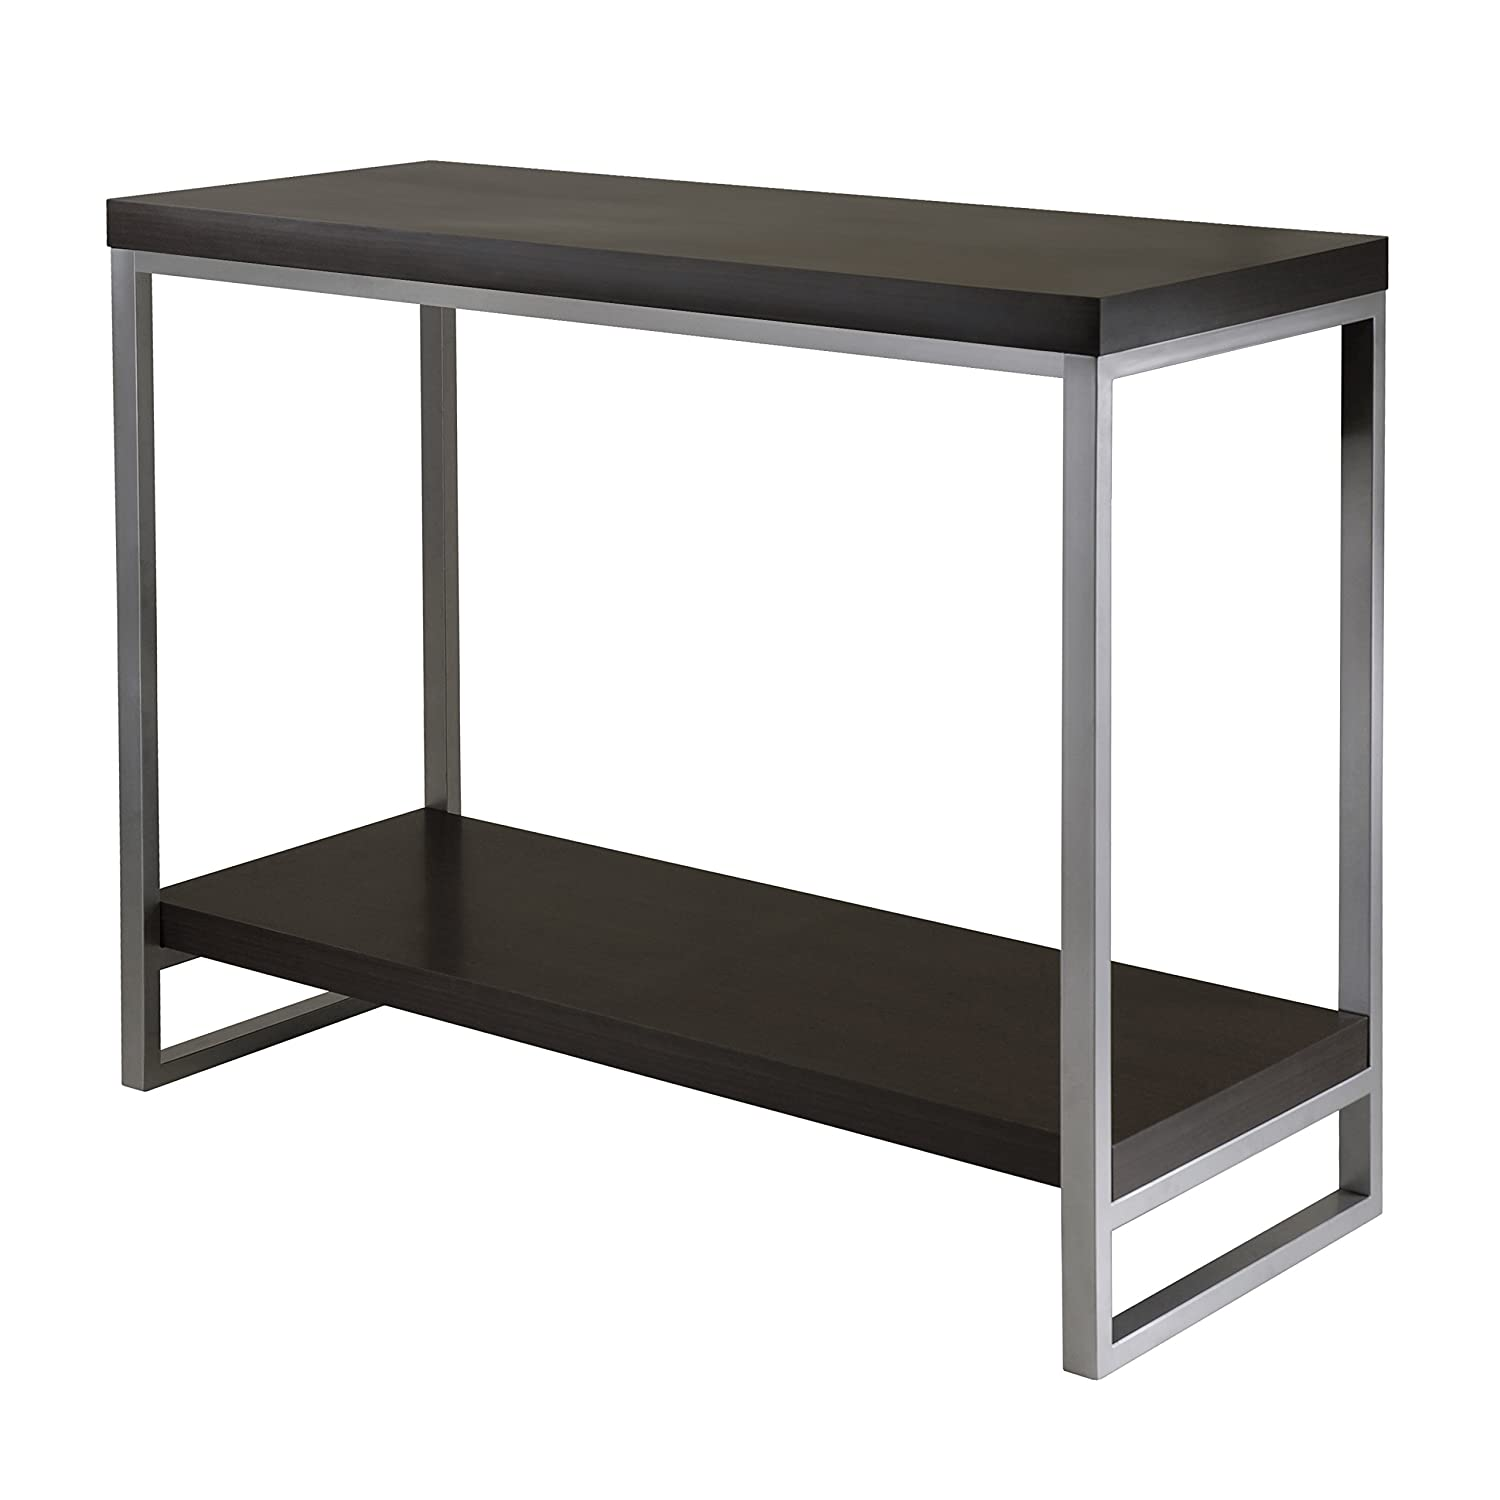 Amazon winsome wood jared console table espresso finish amazon winsome wood jared console table espresso finish kitchen dining geotapseo Gallery